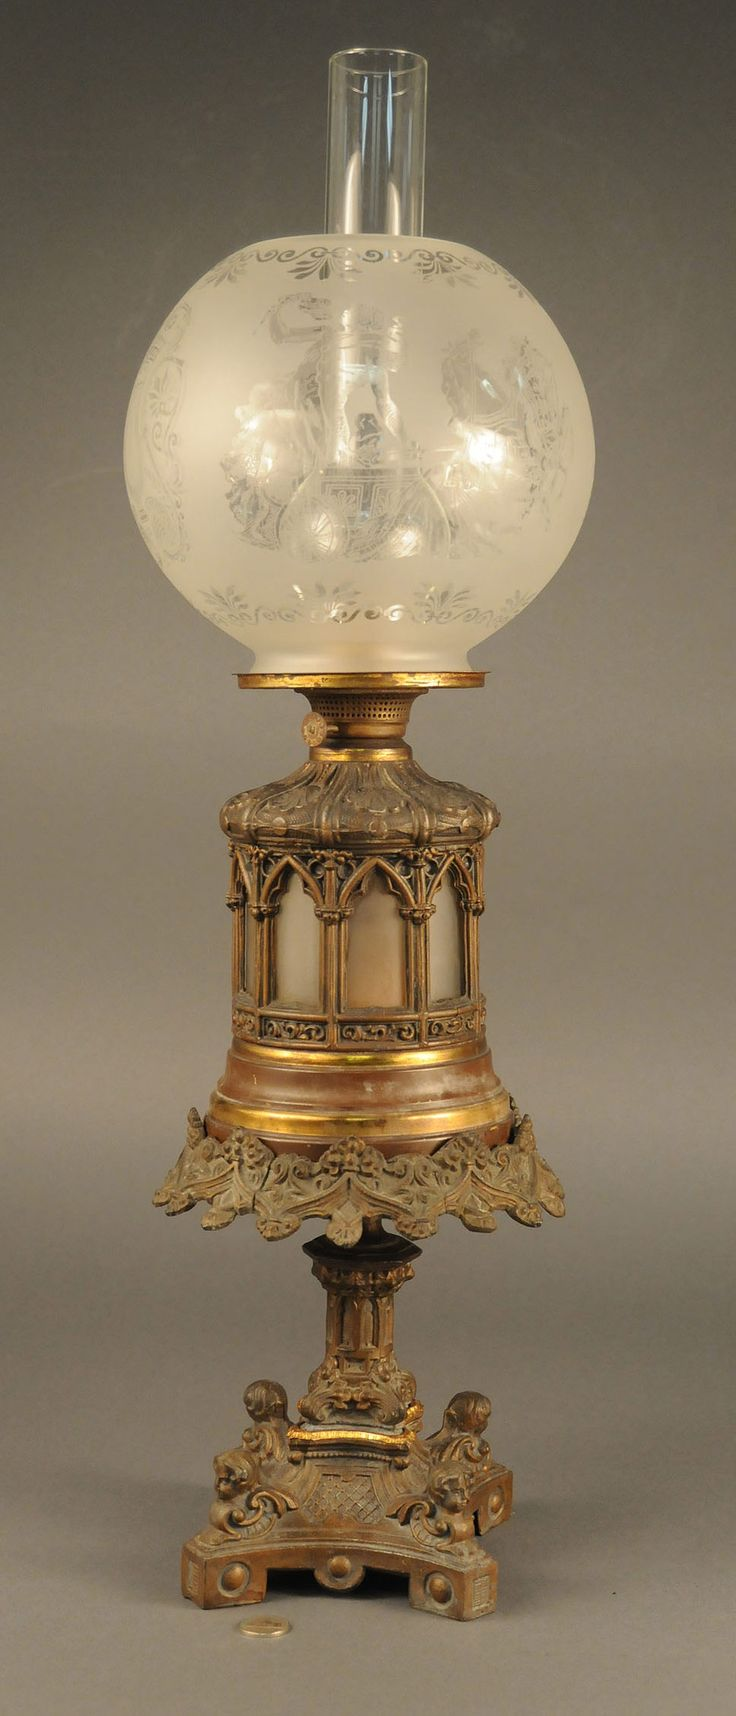 *RARE-VICTORIAN ~ oil lamp etched glass shade with classical scenes. Base has 4 cherubs perched on each corner foot.